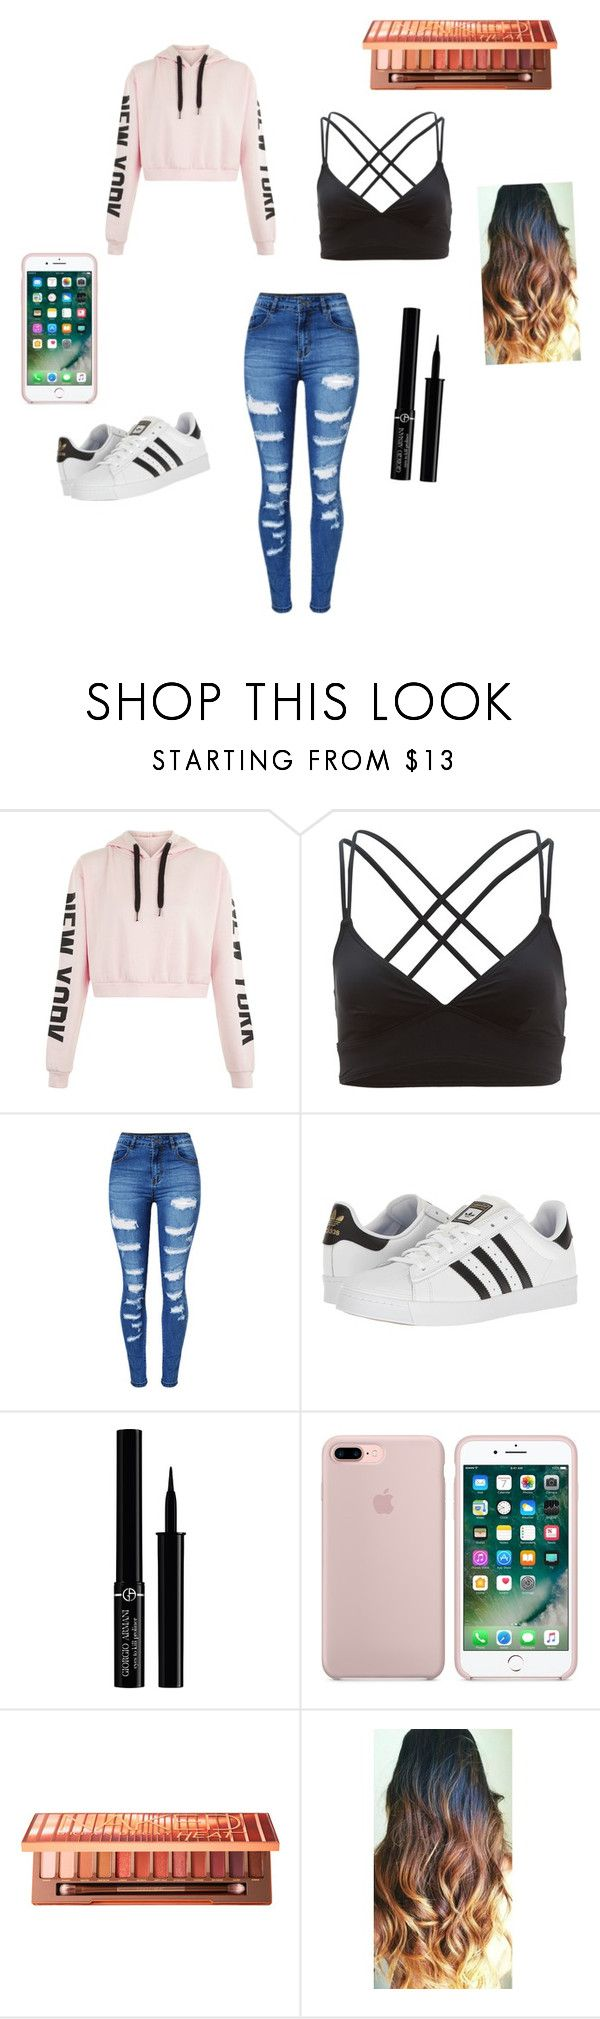 """""""New York"""" by butterflycupcake420 ❤ liked on Polyvore featuring TYR, WithChic, adidas, Giorgio Armani and Urban Decay"""